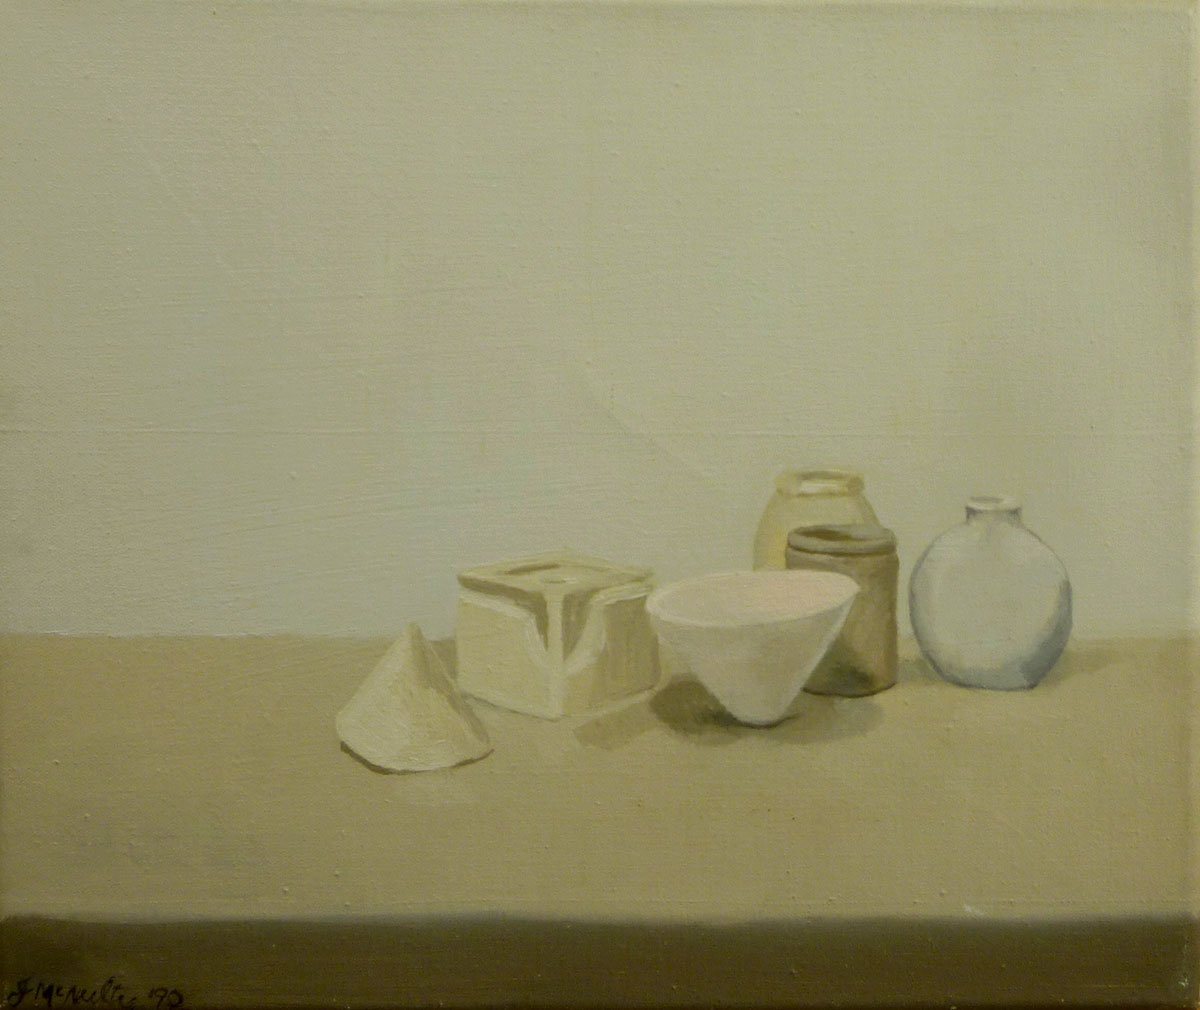 44-Still-Life-with-Paper-Cone-1990-